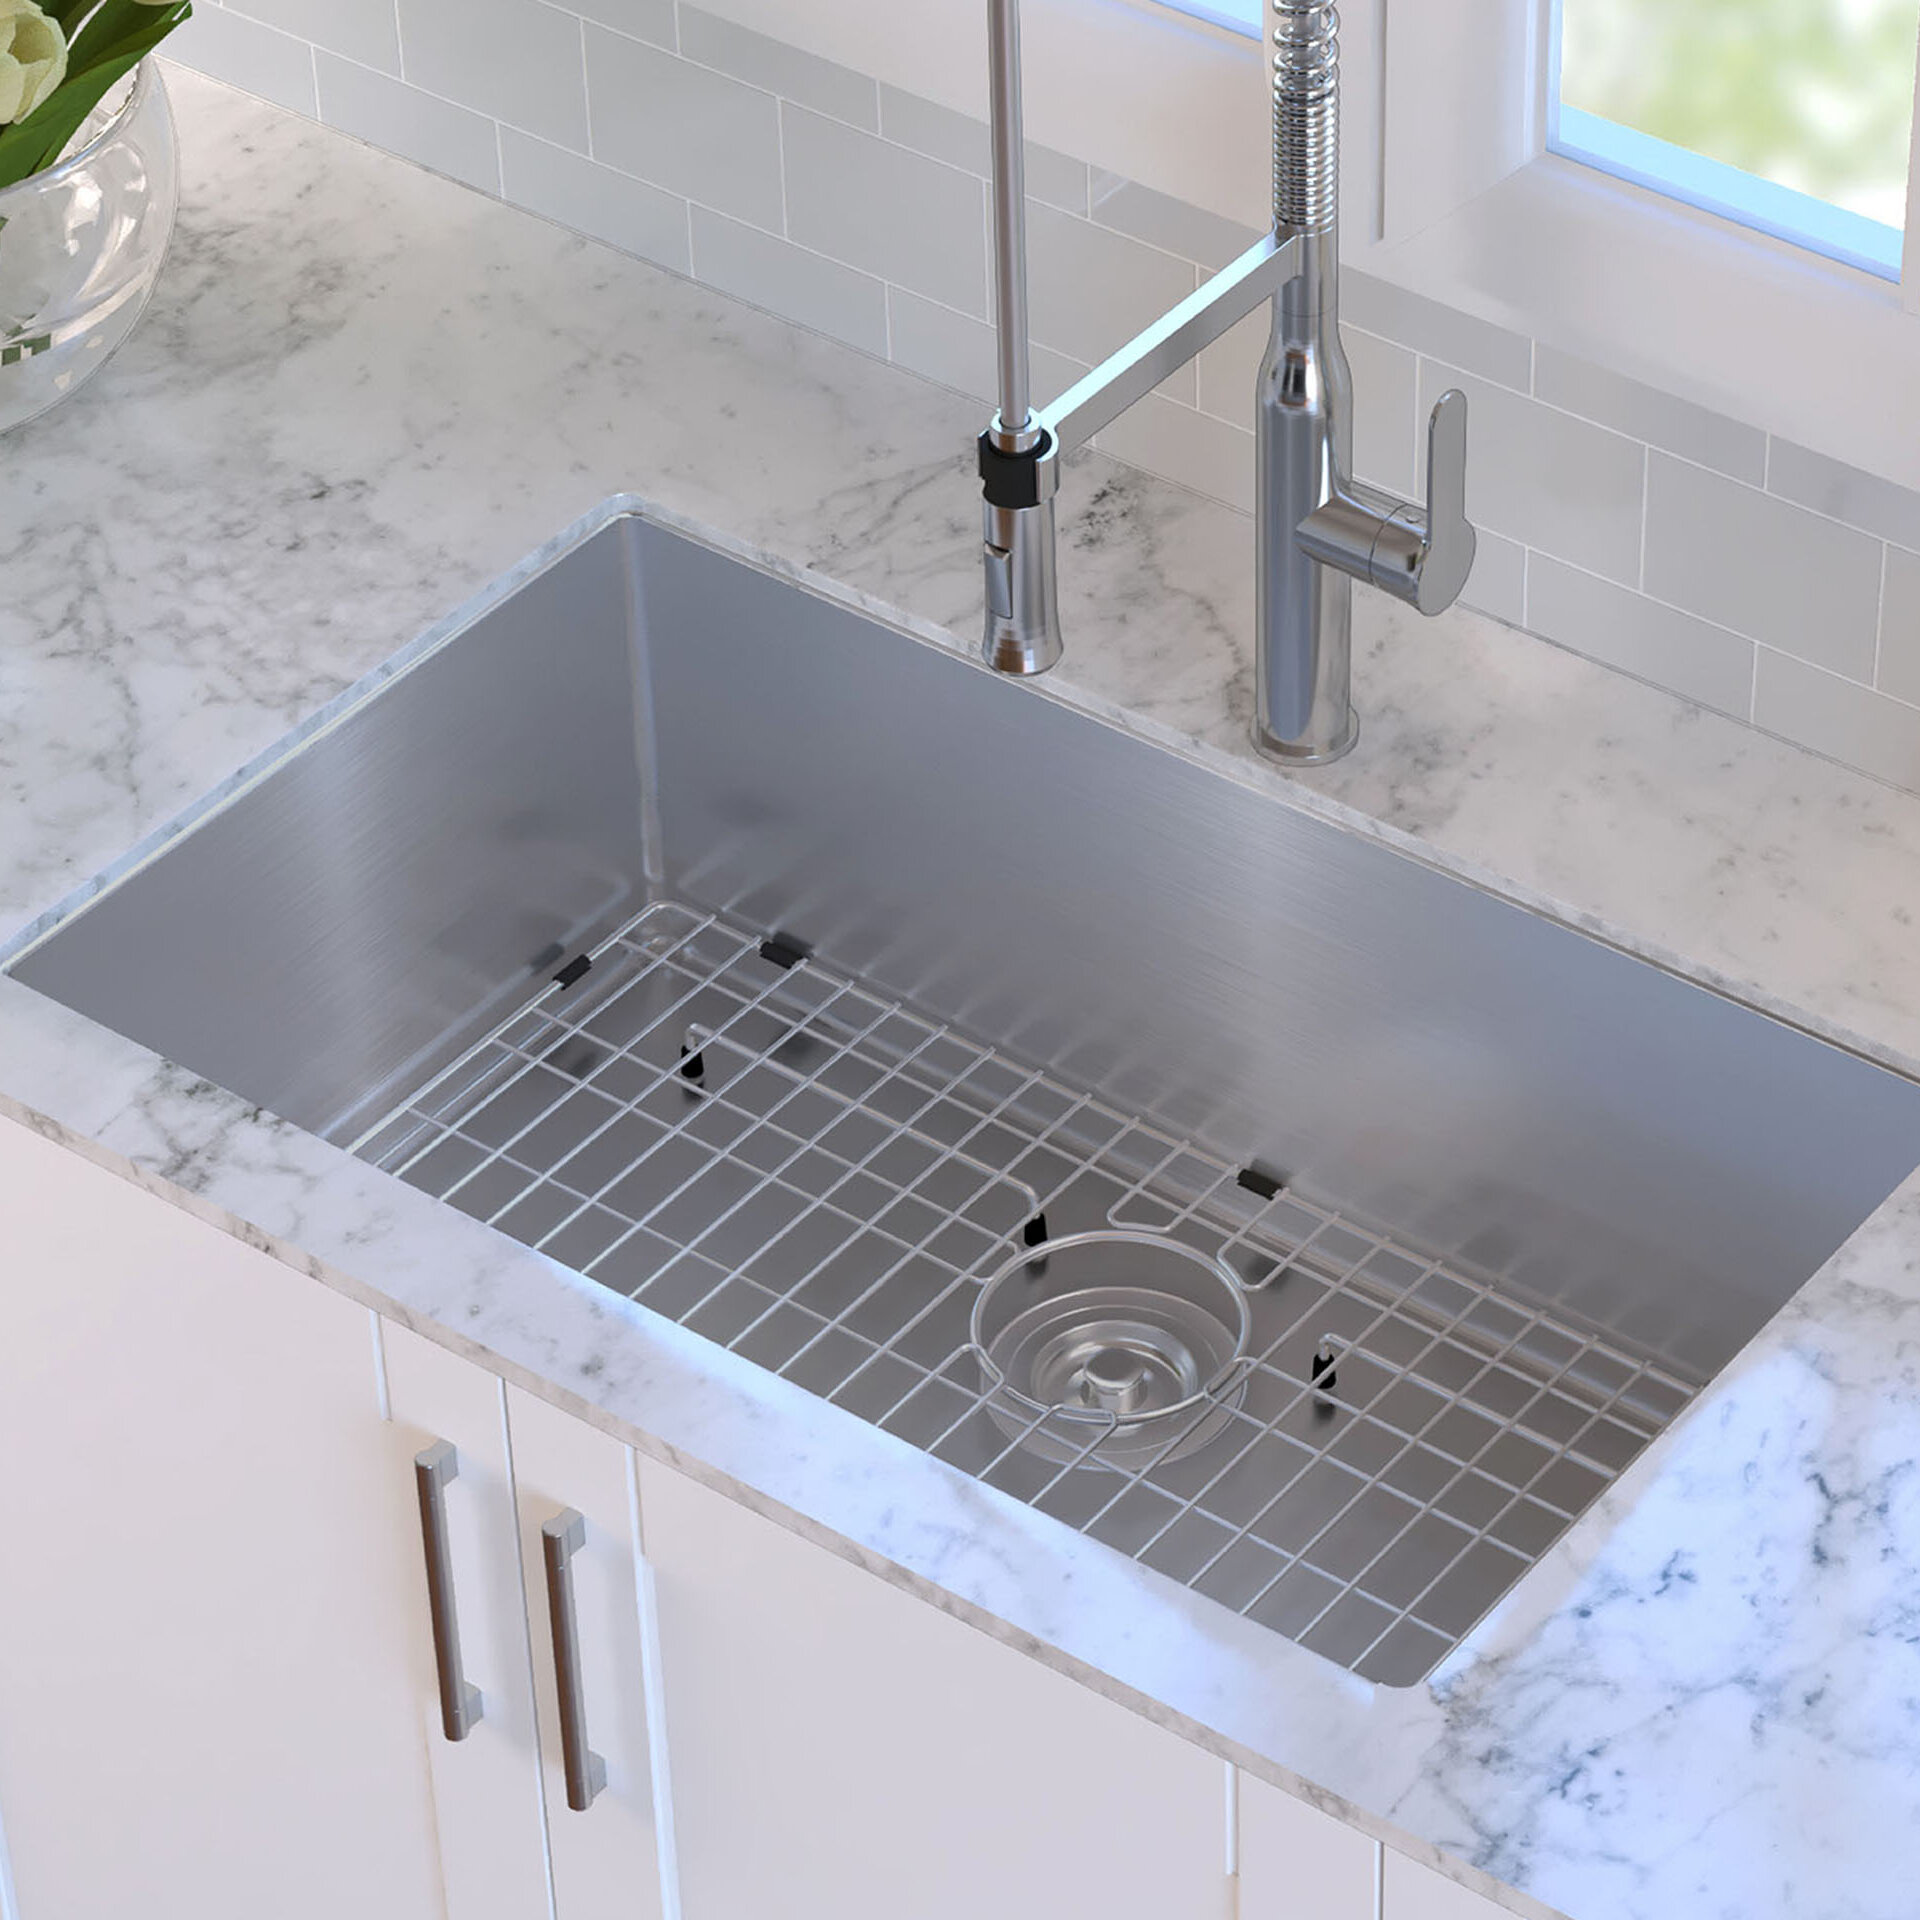 cape direct taps cabinets online lowes blanco and double staggering inset with buy space code sale faucets where farm insetundermount stainless in undermount sinks white ideas discount tetra depot town home staggeringen kitchen seima the steel for pro sink blue at surrey